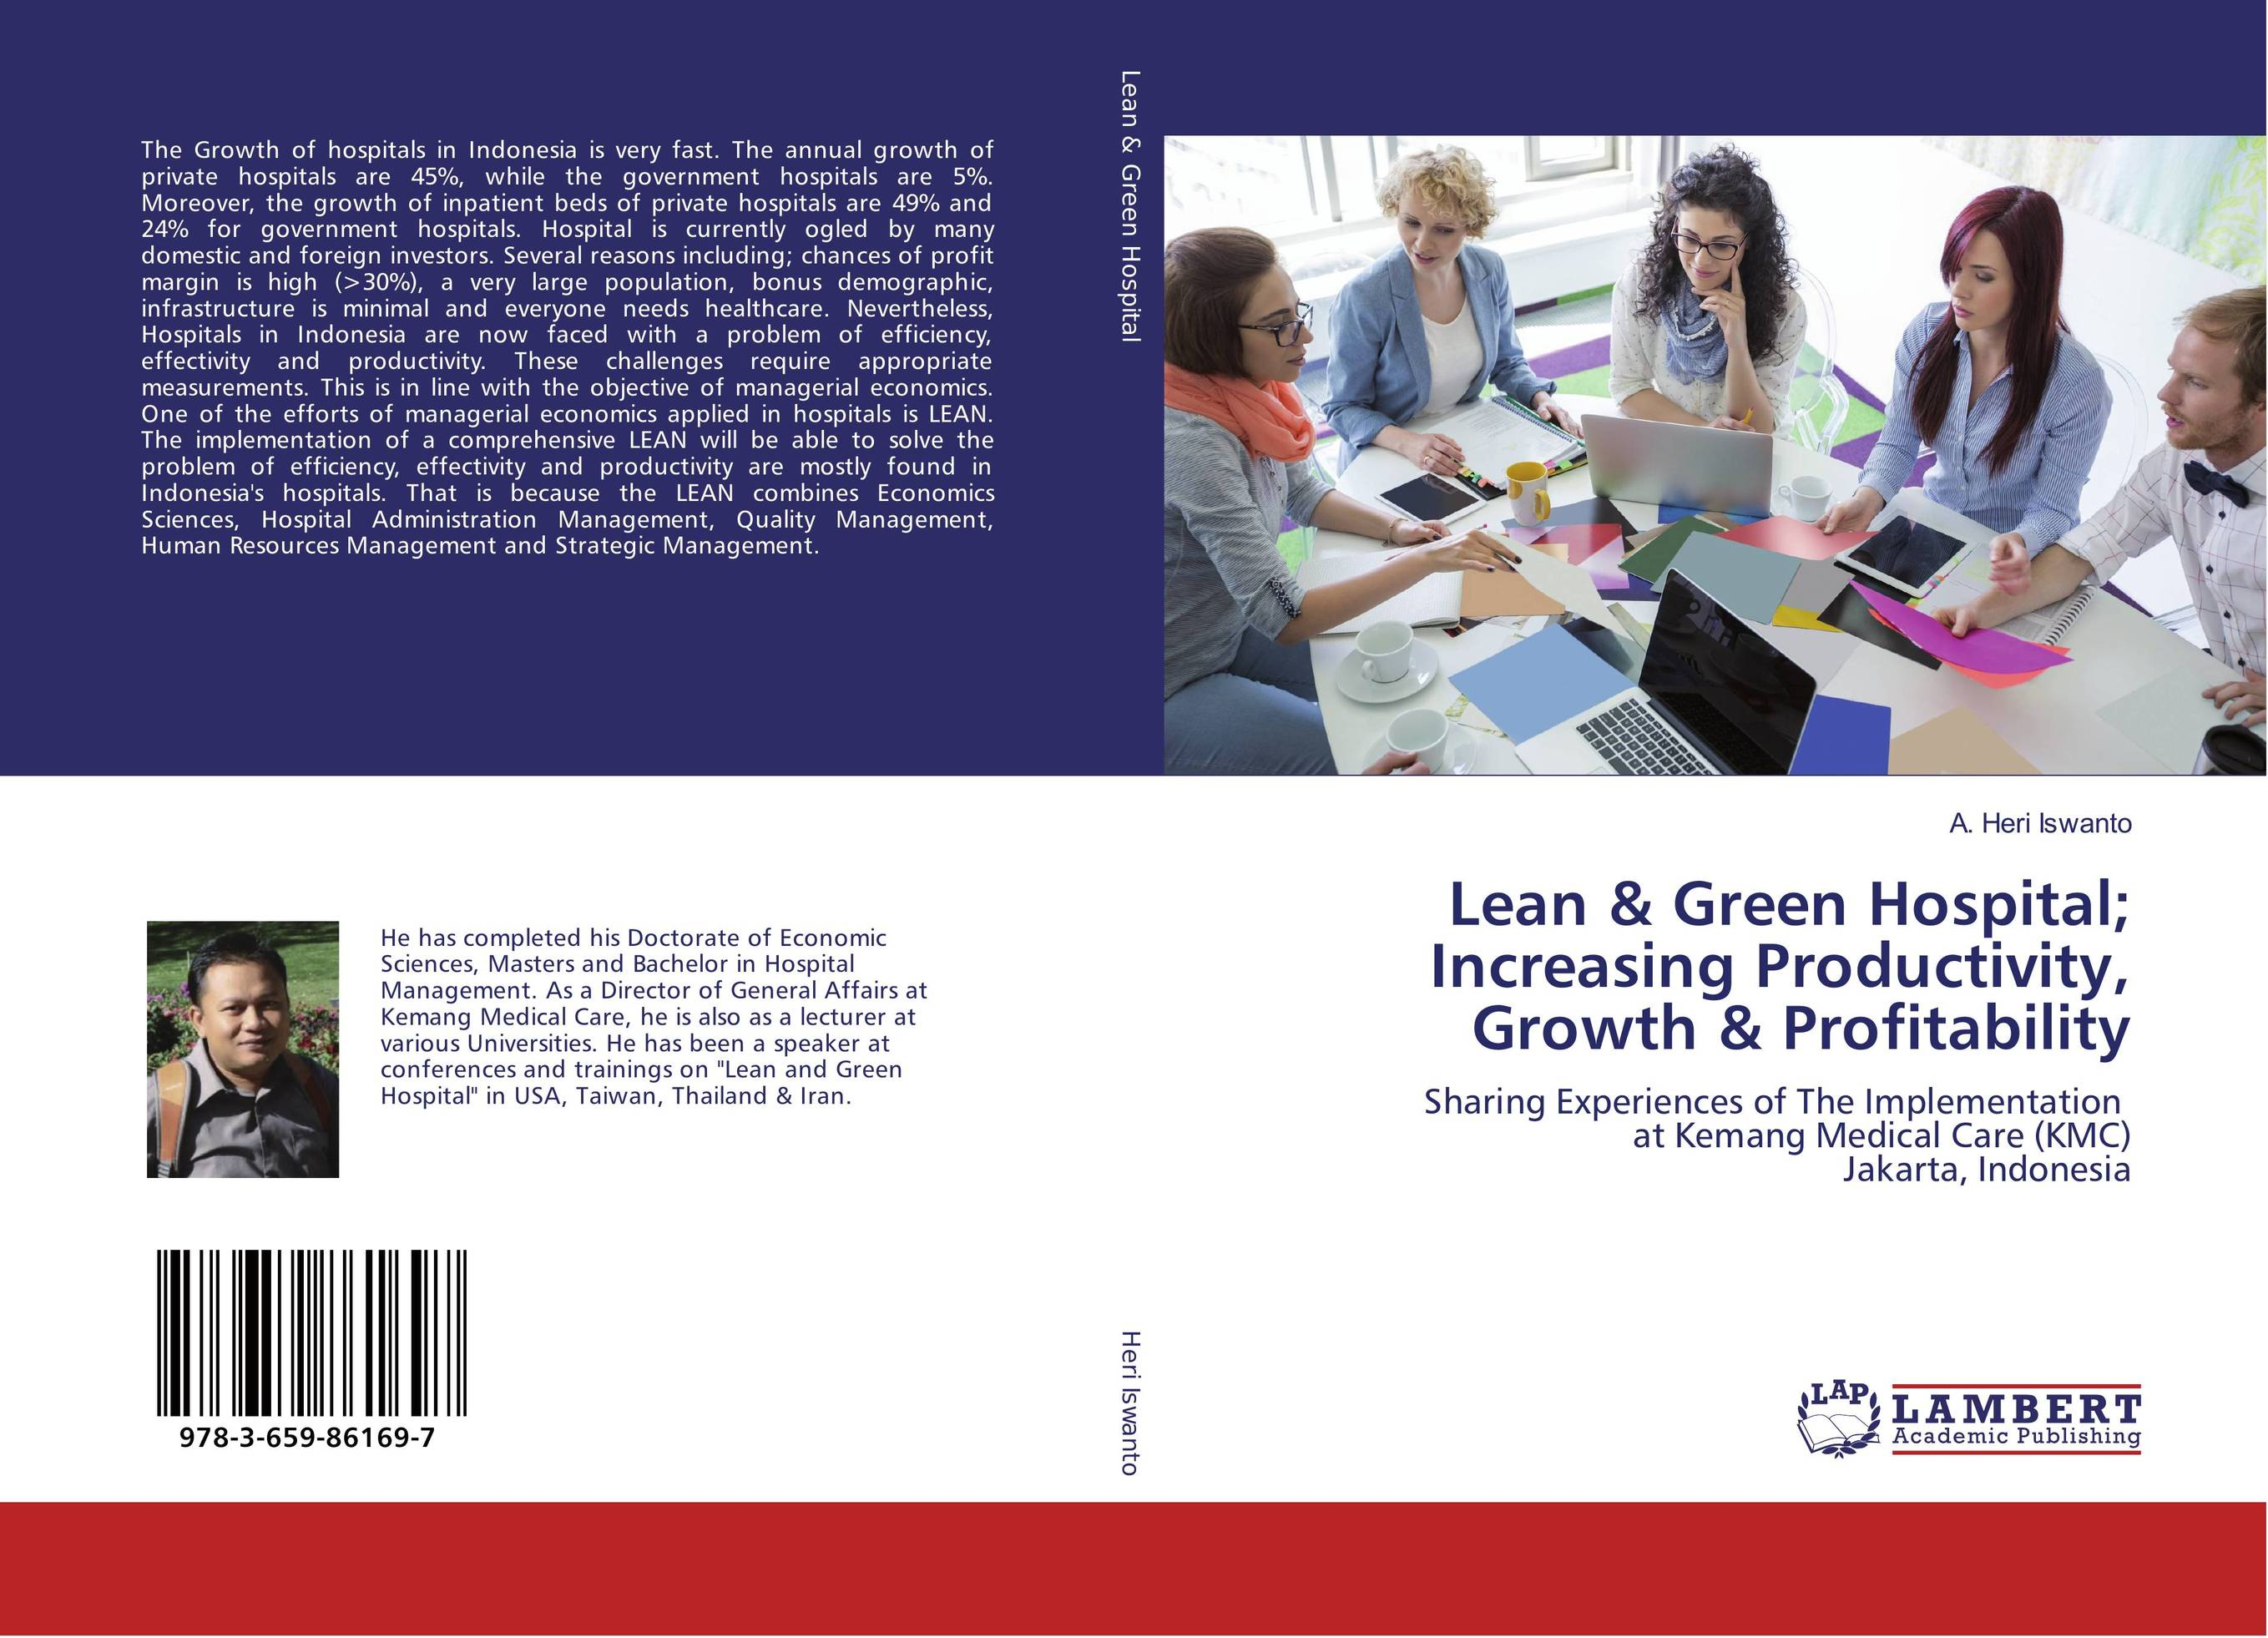 Lean & Green Hospital; Increasing Productivity, Growth & Profitability john earley the lean book of lean a concise guide to lean management for life and business